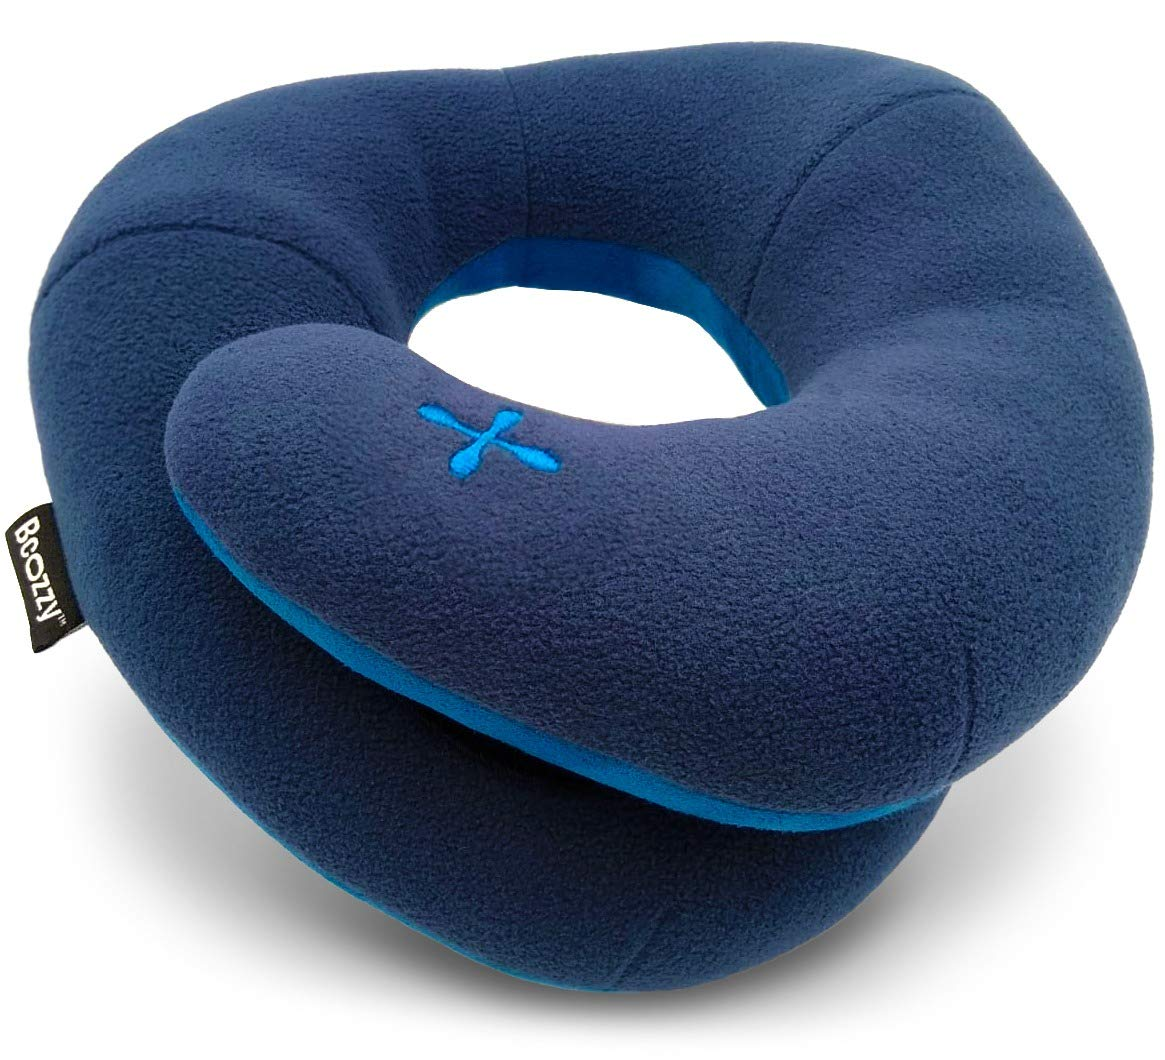 aeroplane neck pillow | air travel cushion | best neck support travel pillow